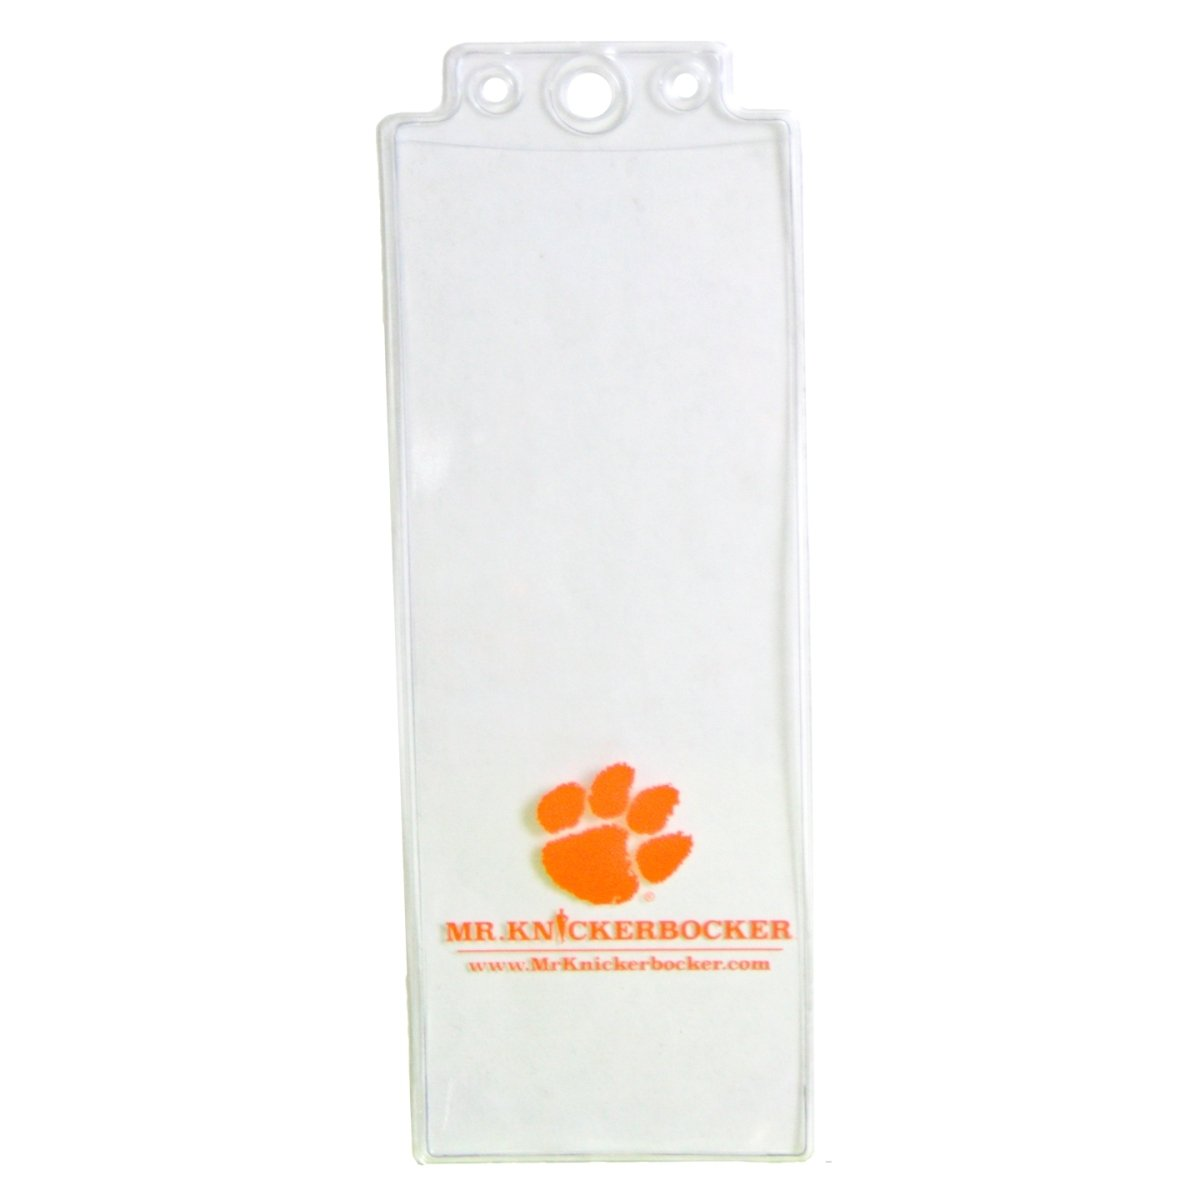 Clear Ticket Holder With Mr K Logo - Mr. Knickerbocker